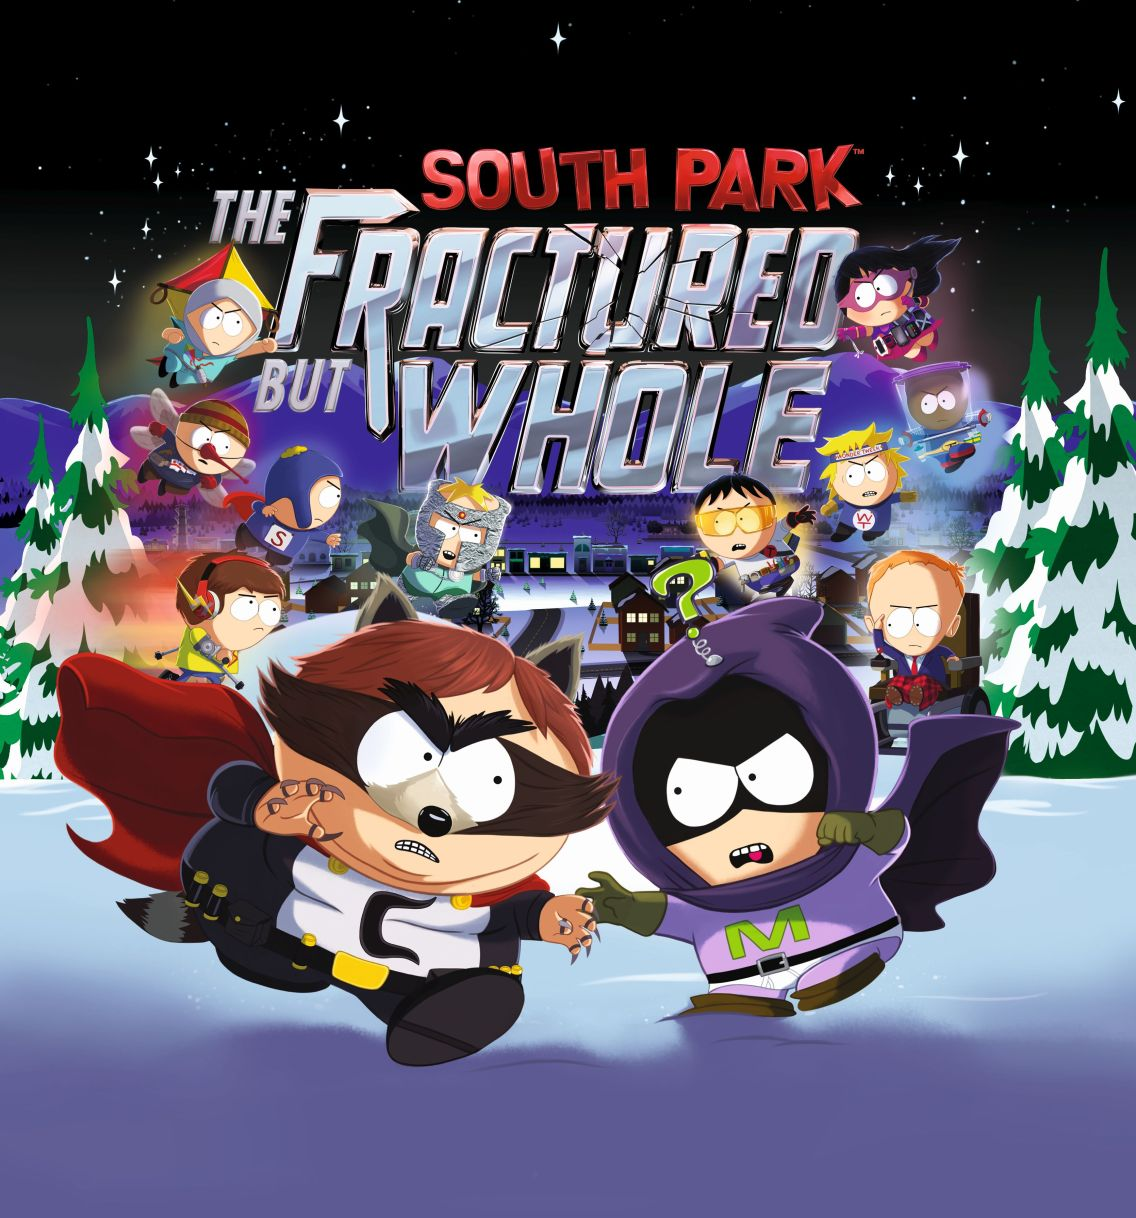 South-Park-The-Fractured-But-Whole_2016_06-13-16_012